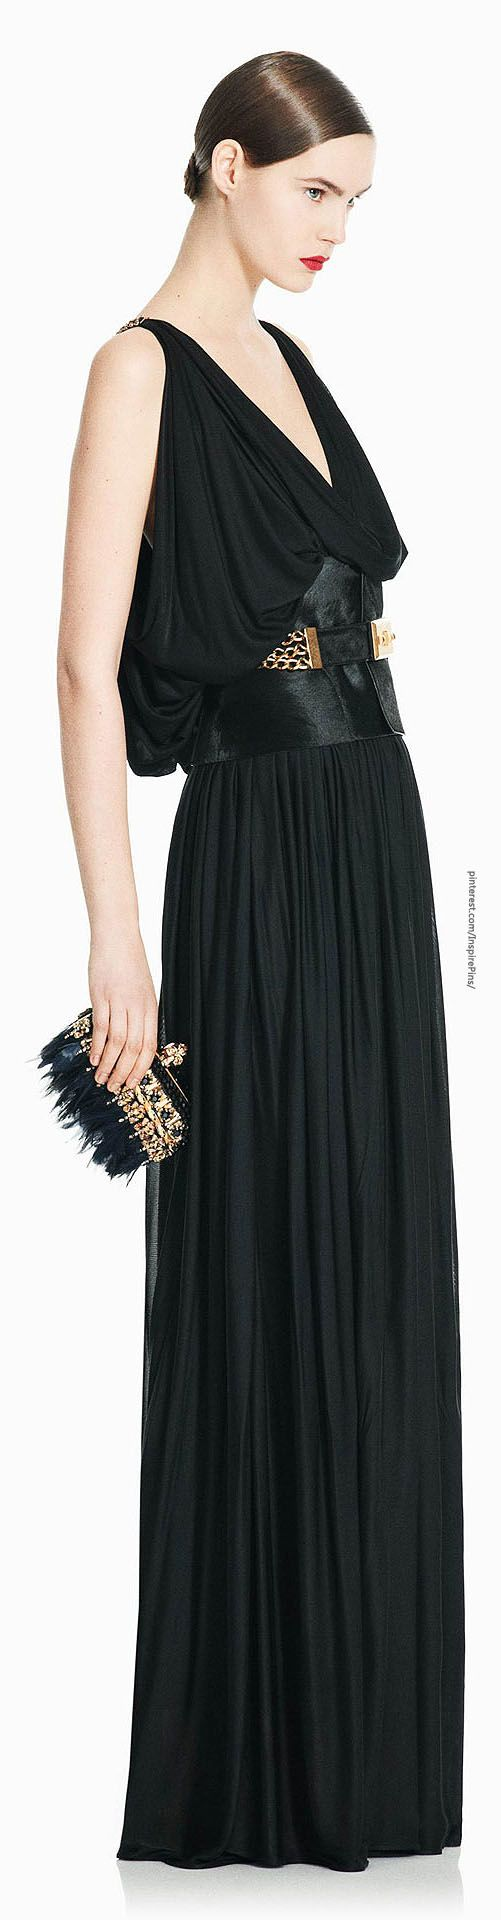 Alexander McQueen...love the draping and the bag. ♡